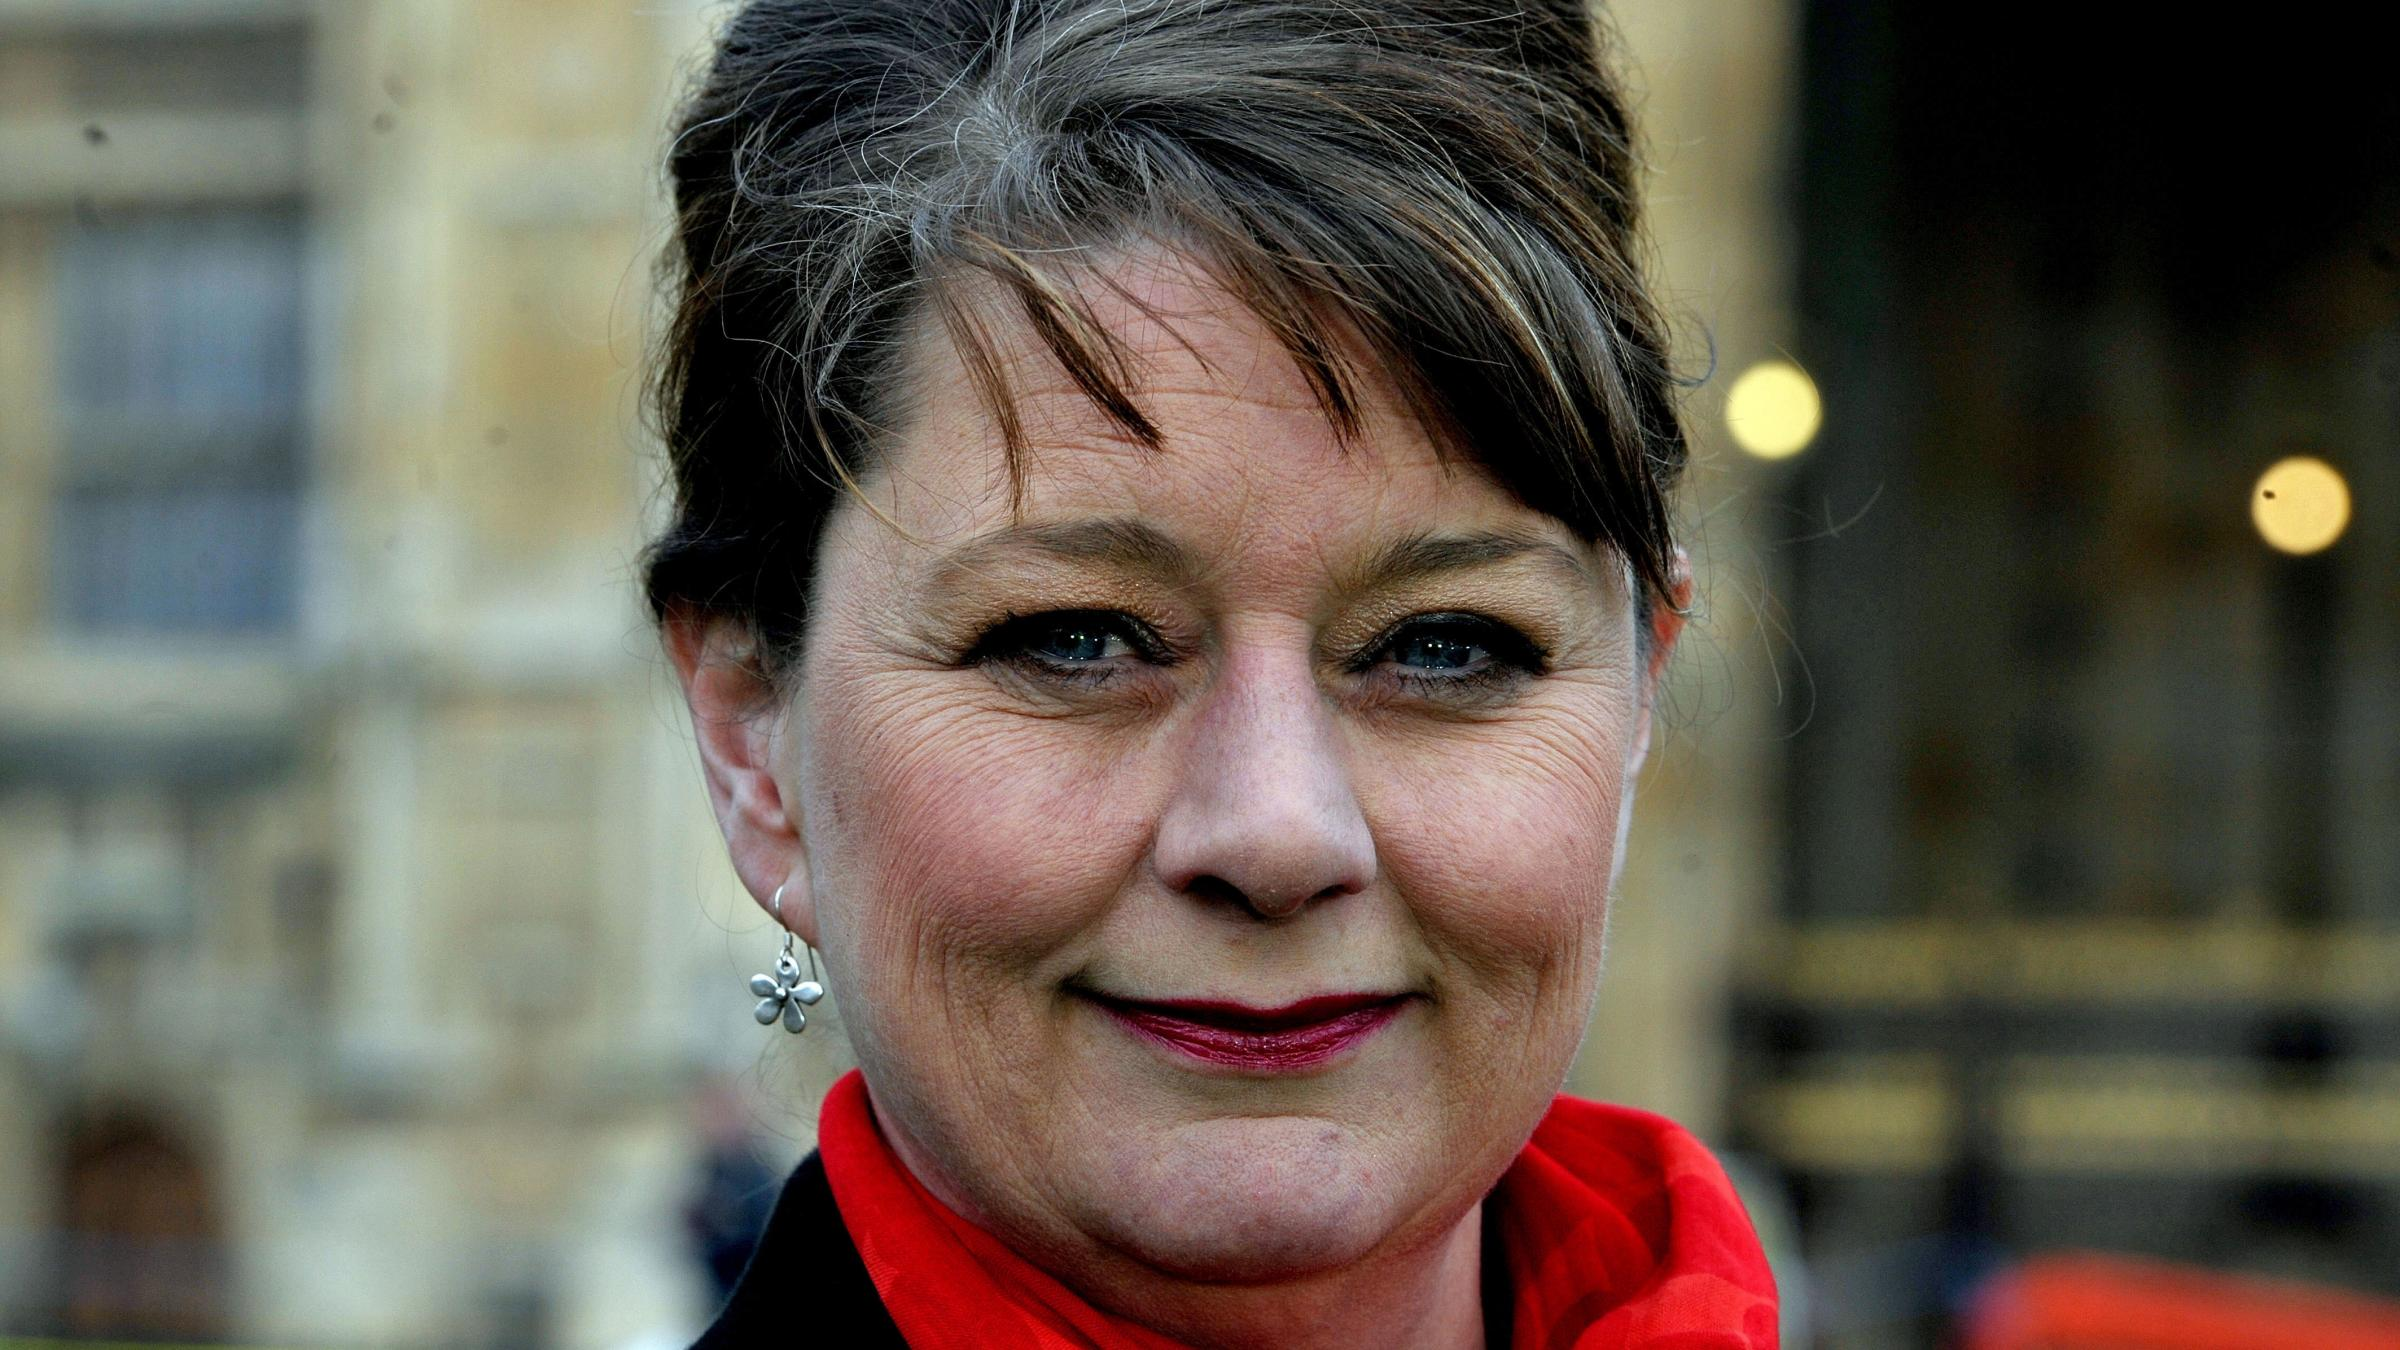 Plaid Cymru leader Leanne Wood: 'Wales needs a mandate, not a majority'